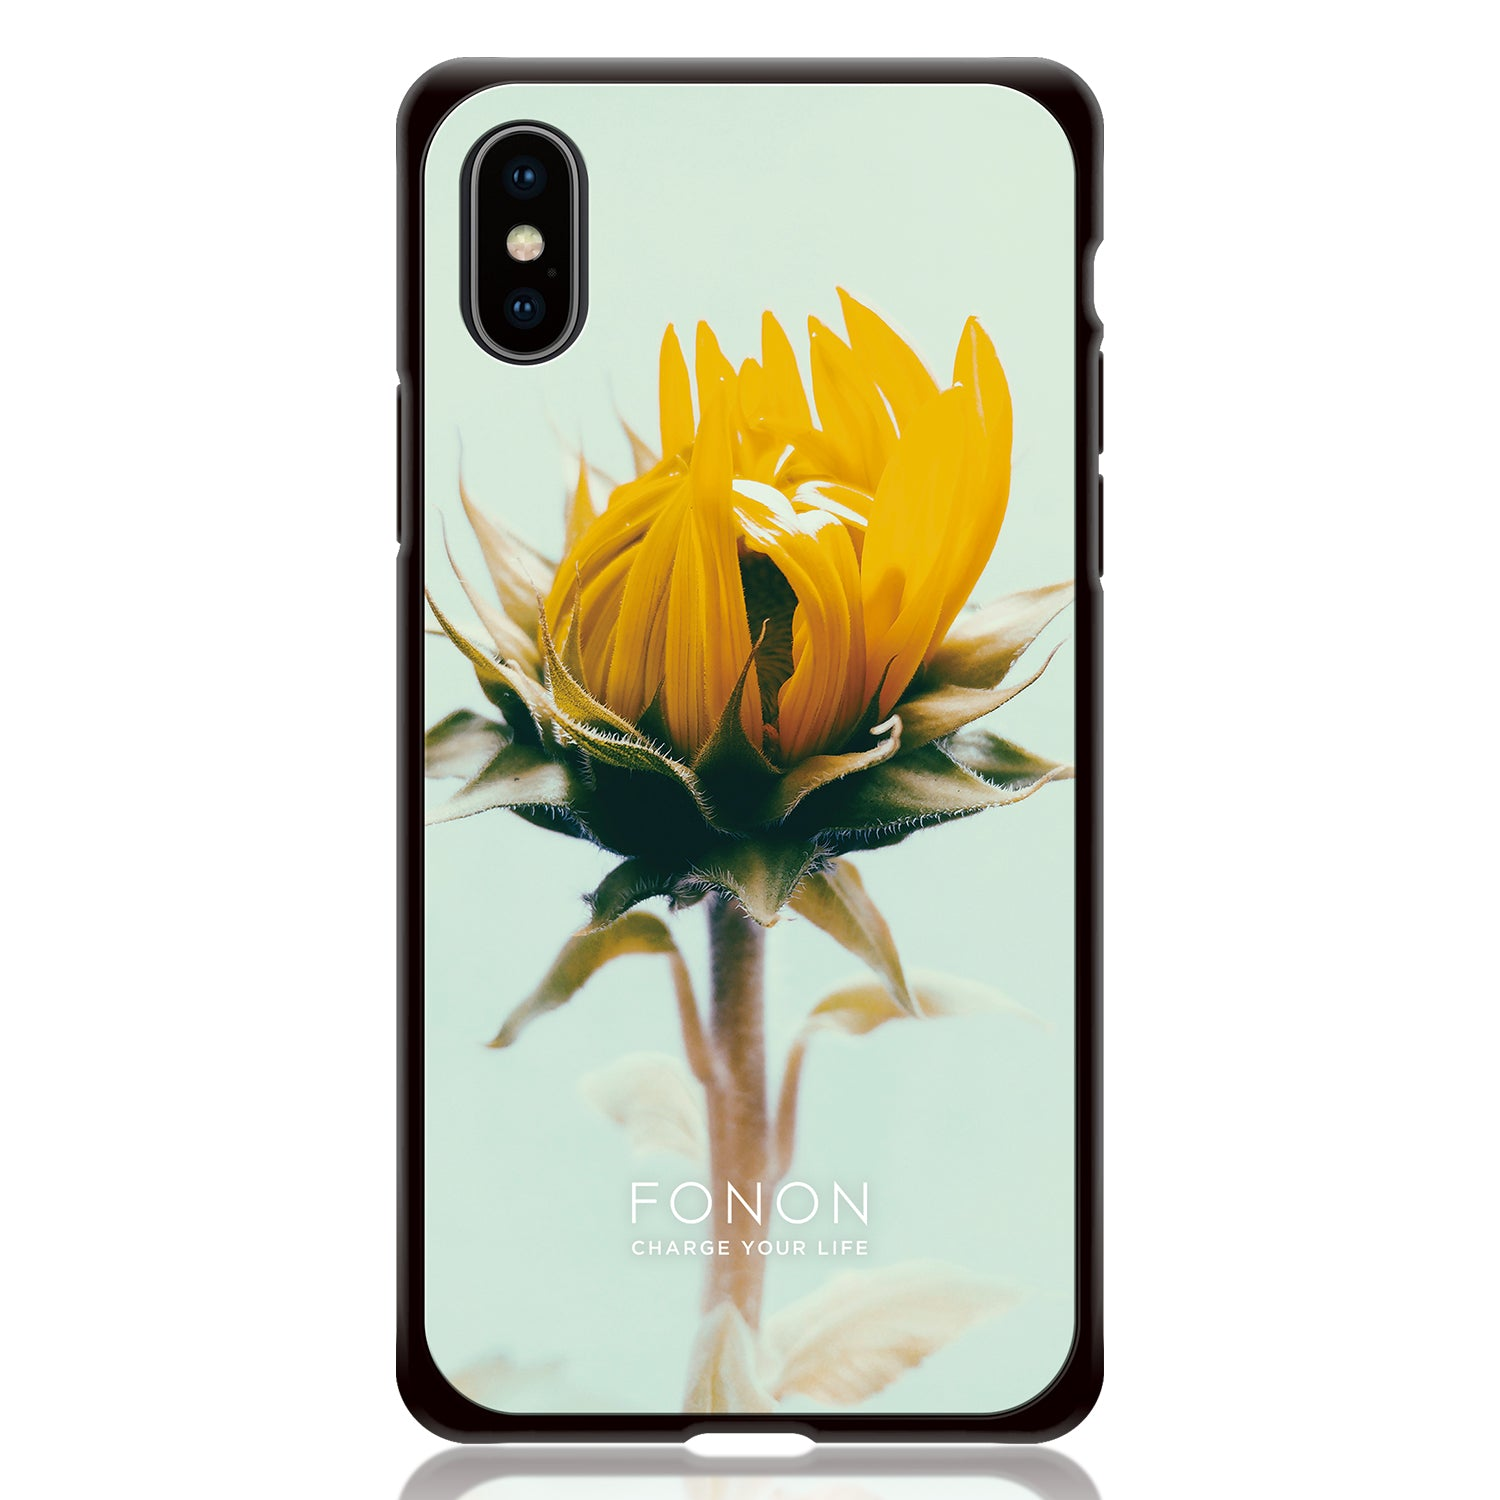 DAMPER GLASS iPhone CASE - BOTANICAL GARDEN - Dandelion